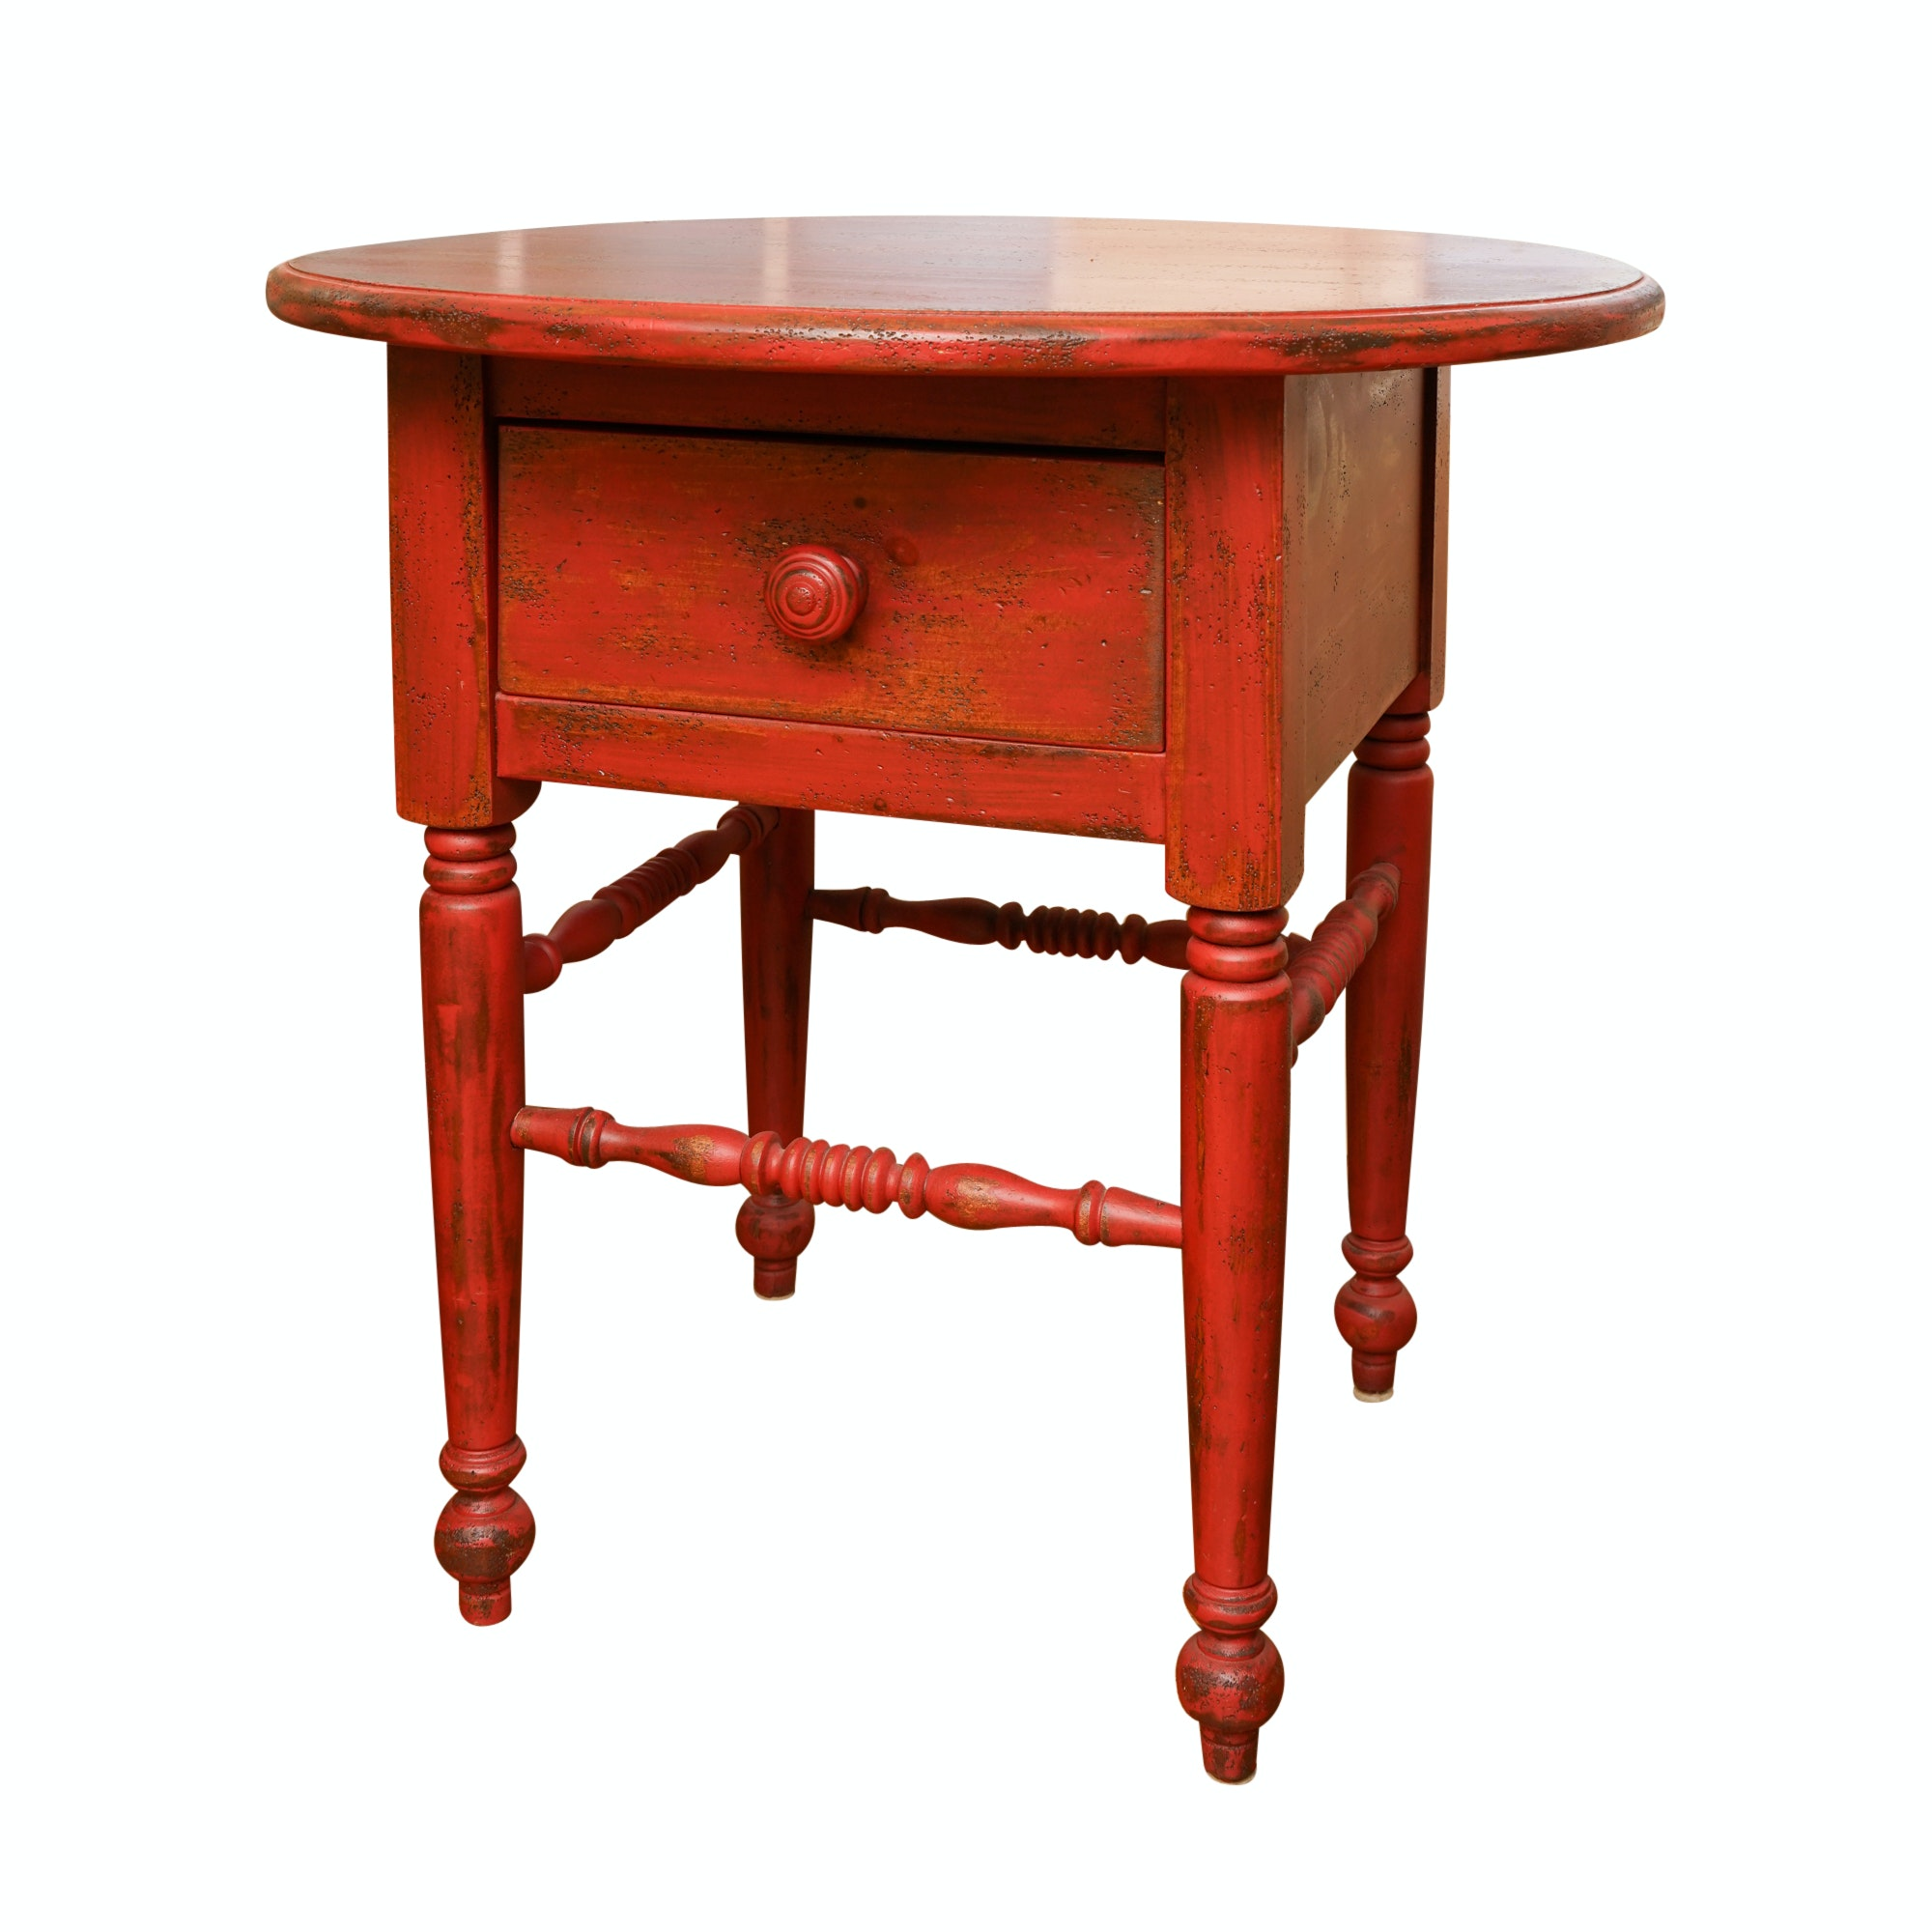 Painted and Distressed Wood Side Table by Eddy West